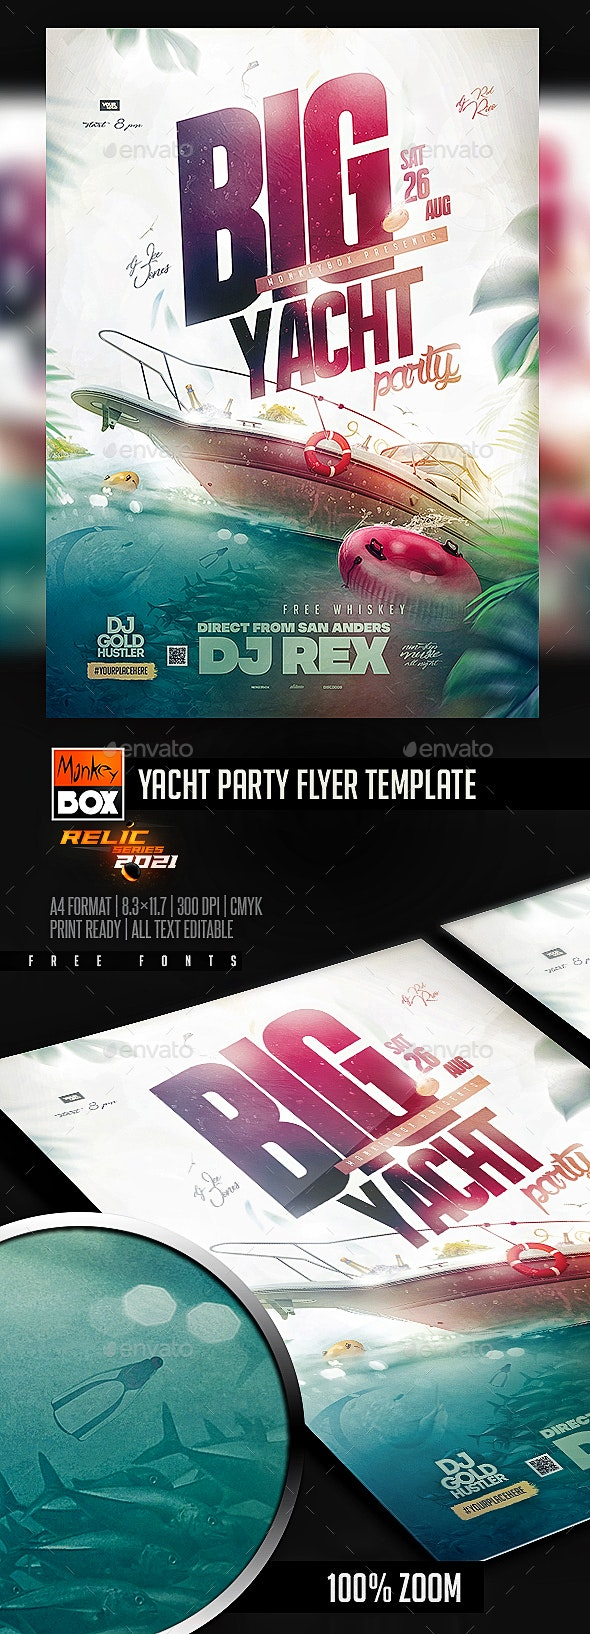 Yacht Party Flyer Template - Events Flyers